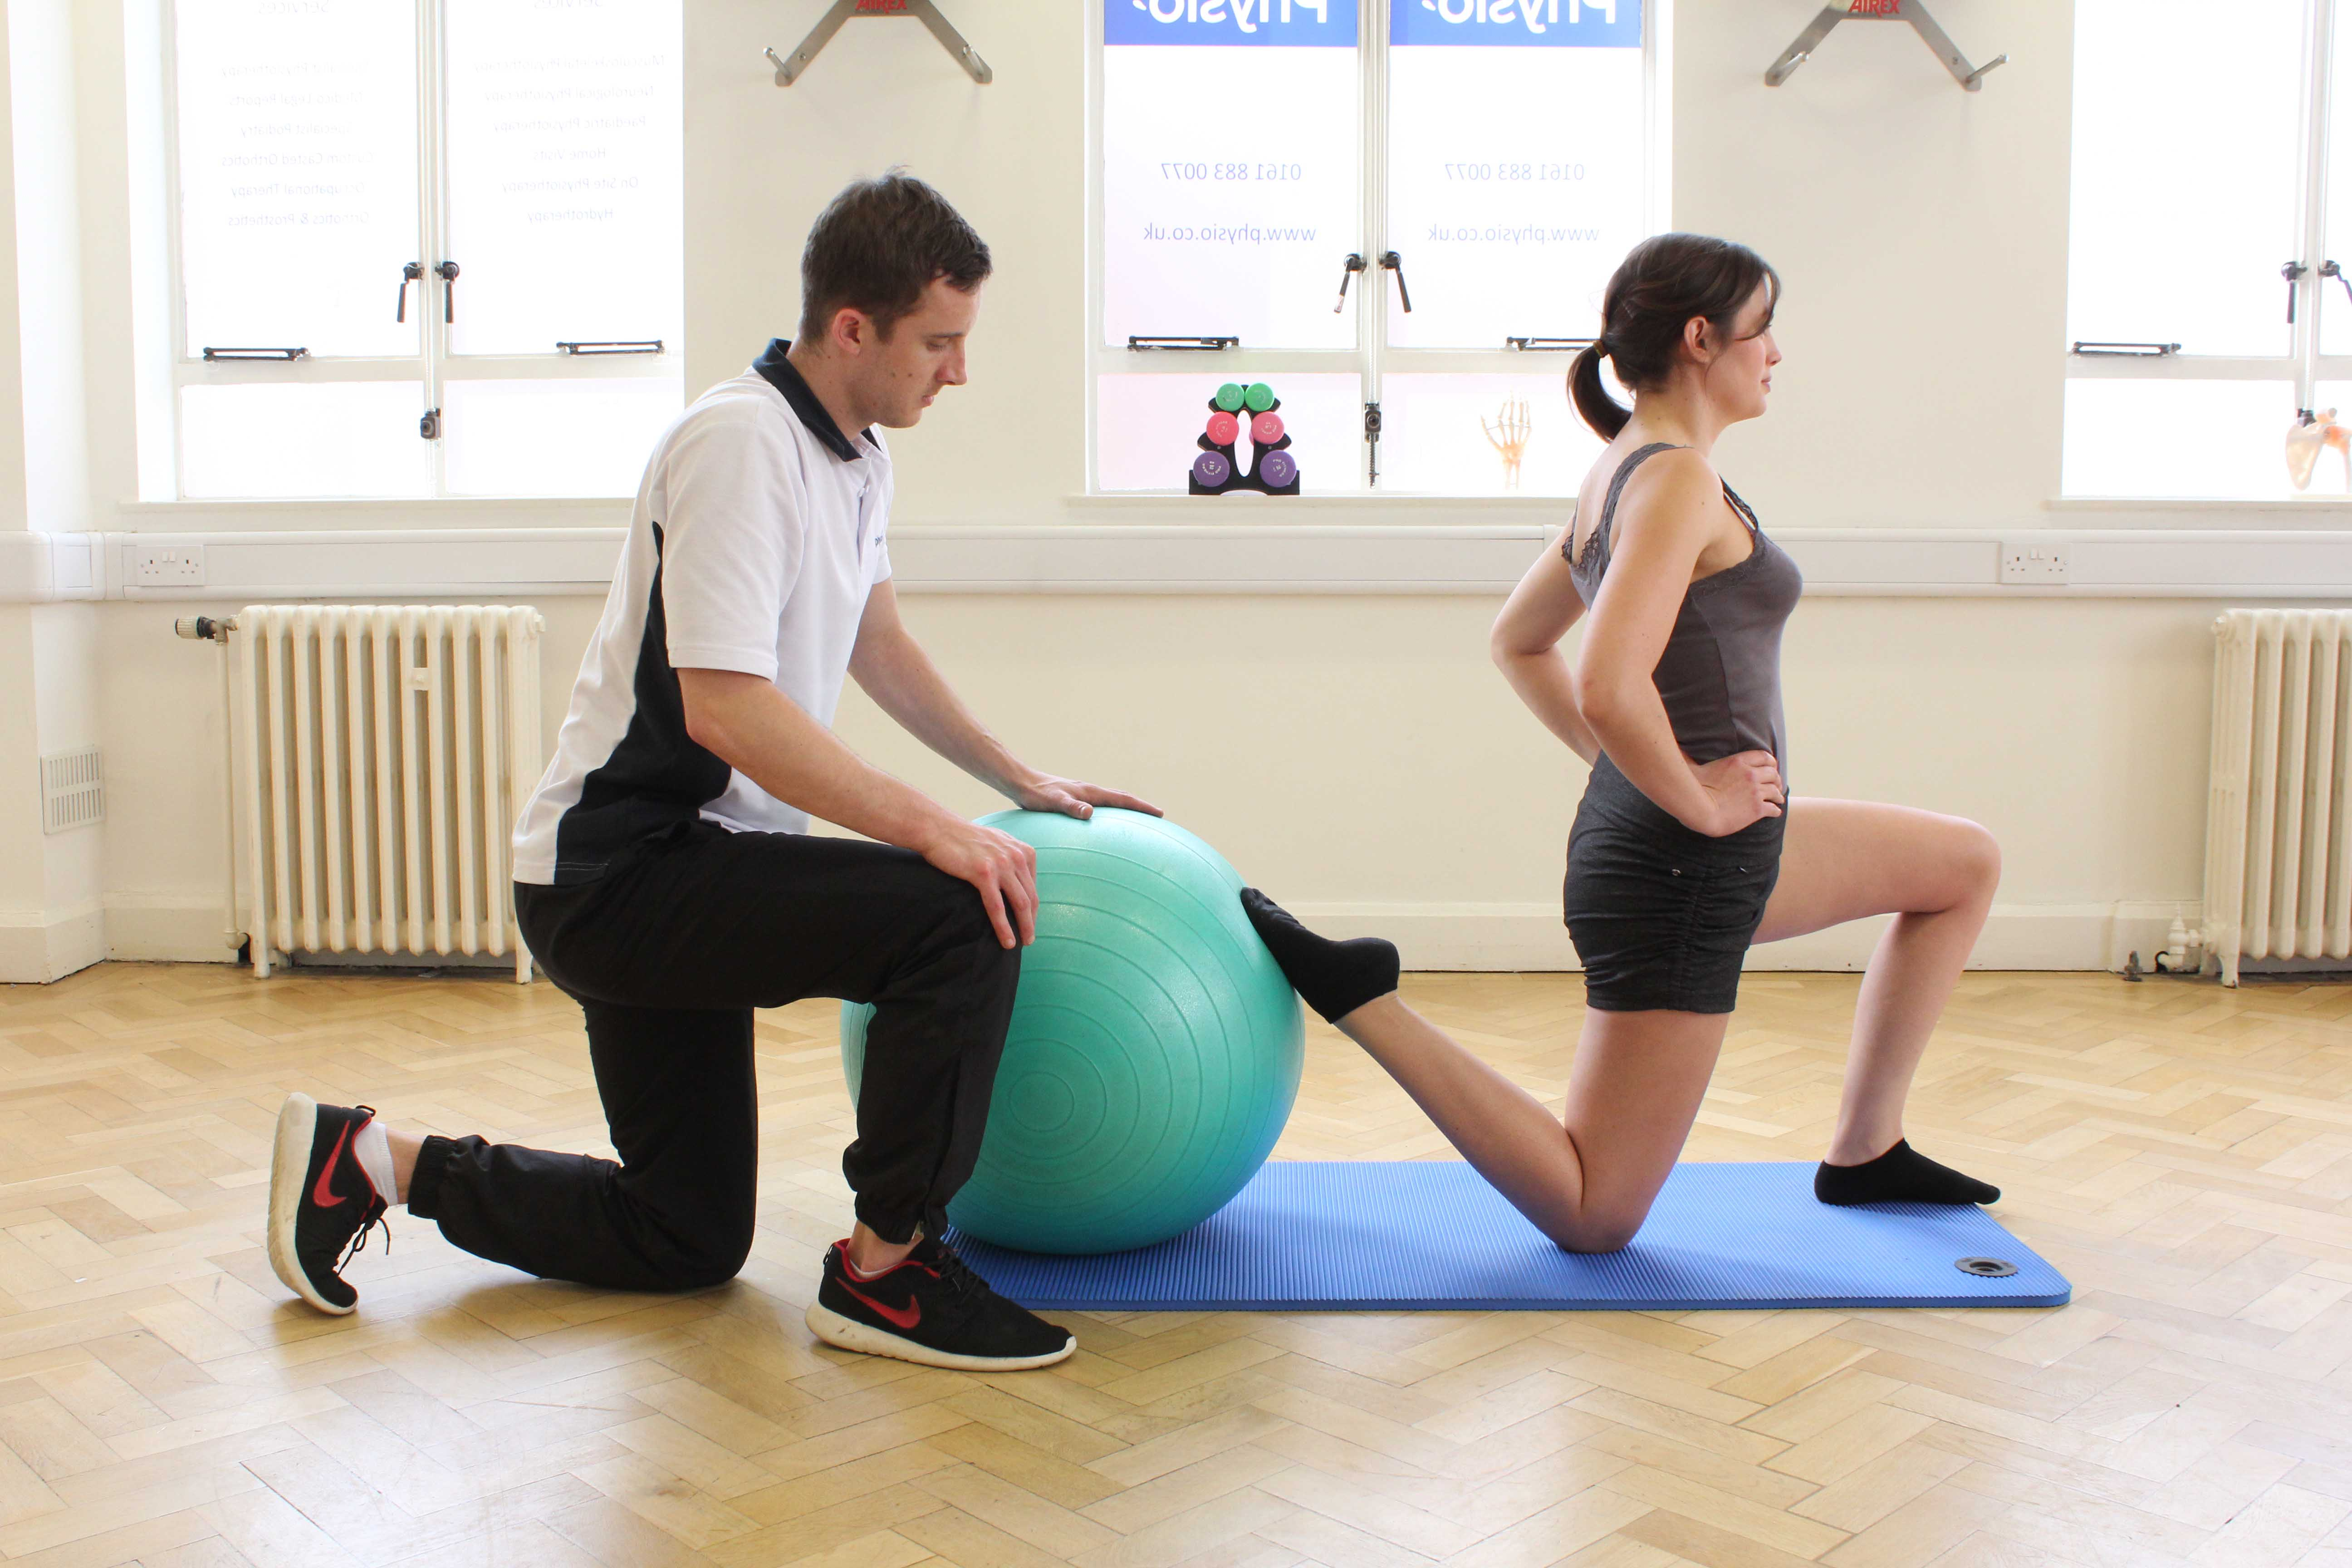 Hip extension flexibility measured with goniometer during assessment by physiotherapist